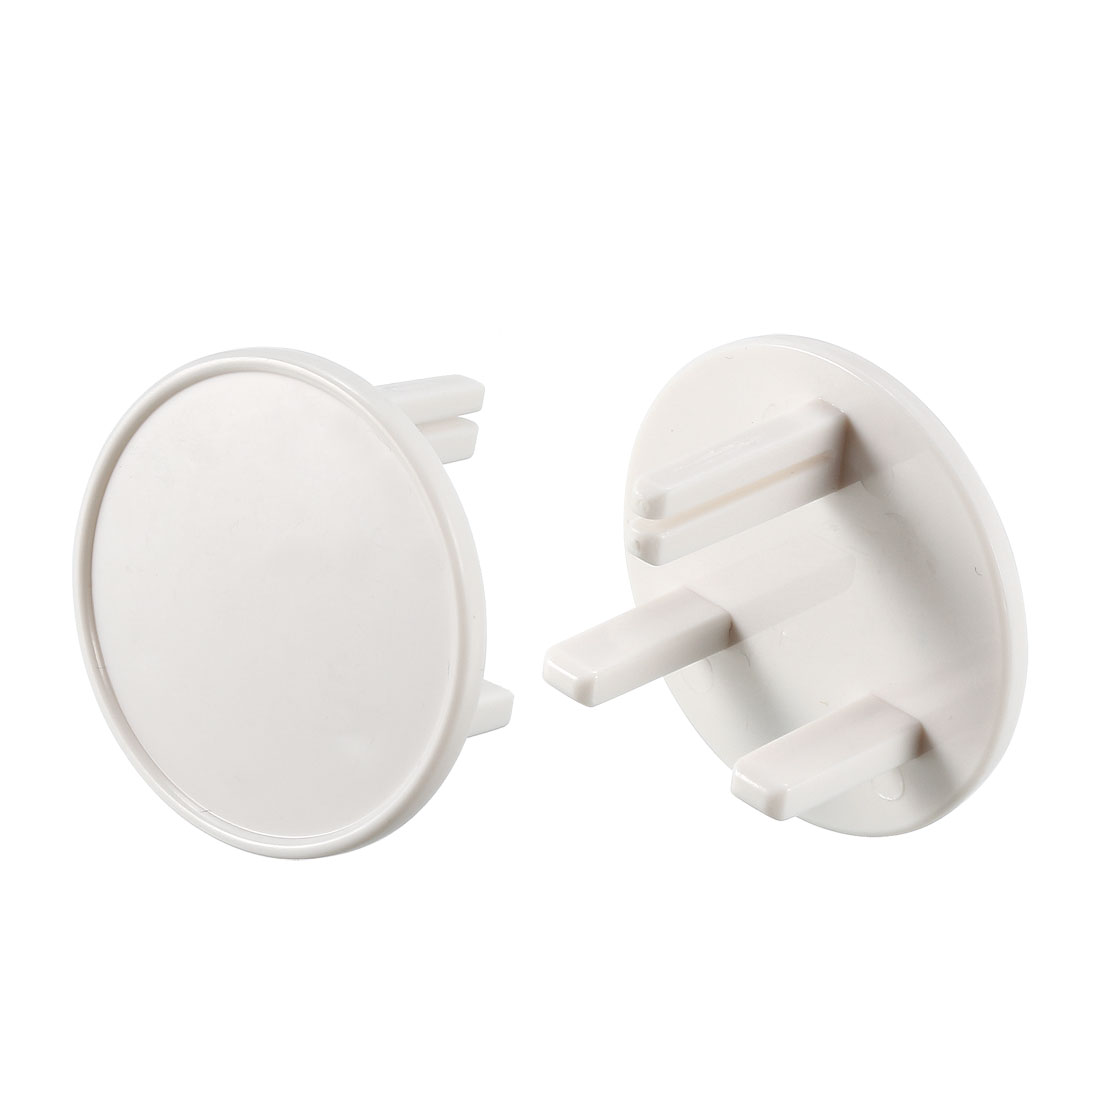 Outlet Plugs Covers Childproof EU Plug Protectors Socket Cover 3-Pin White 20Pcs